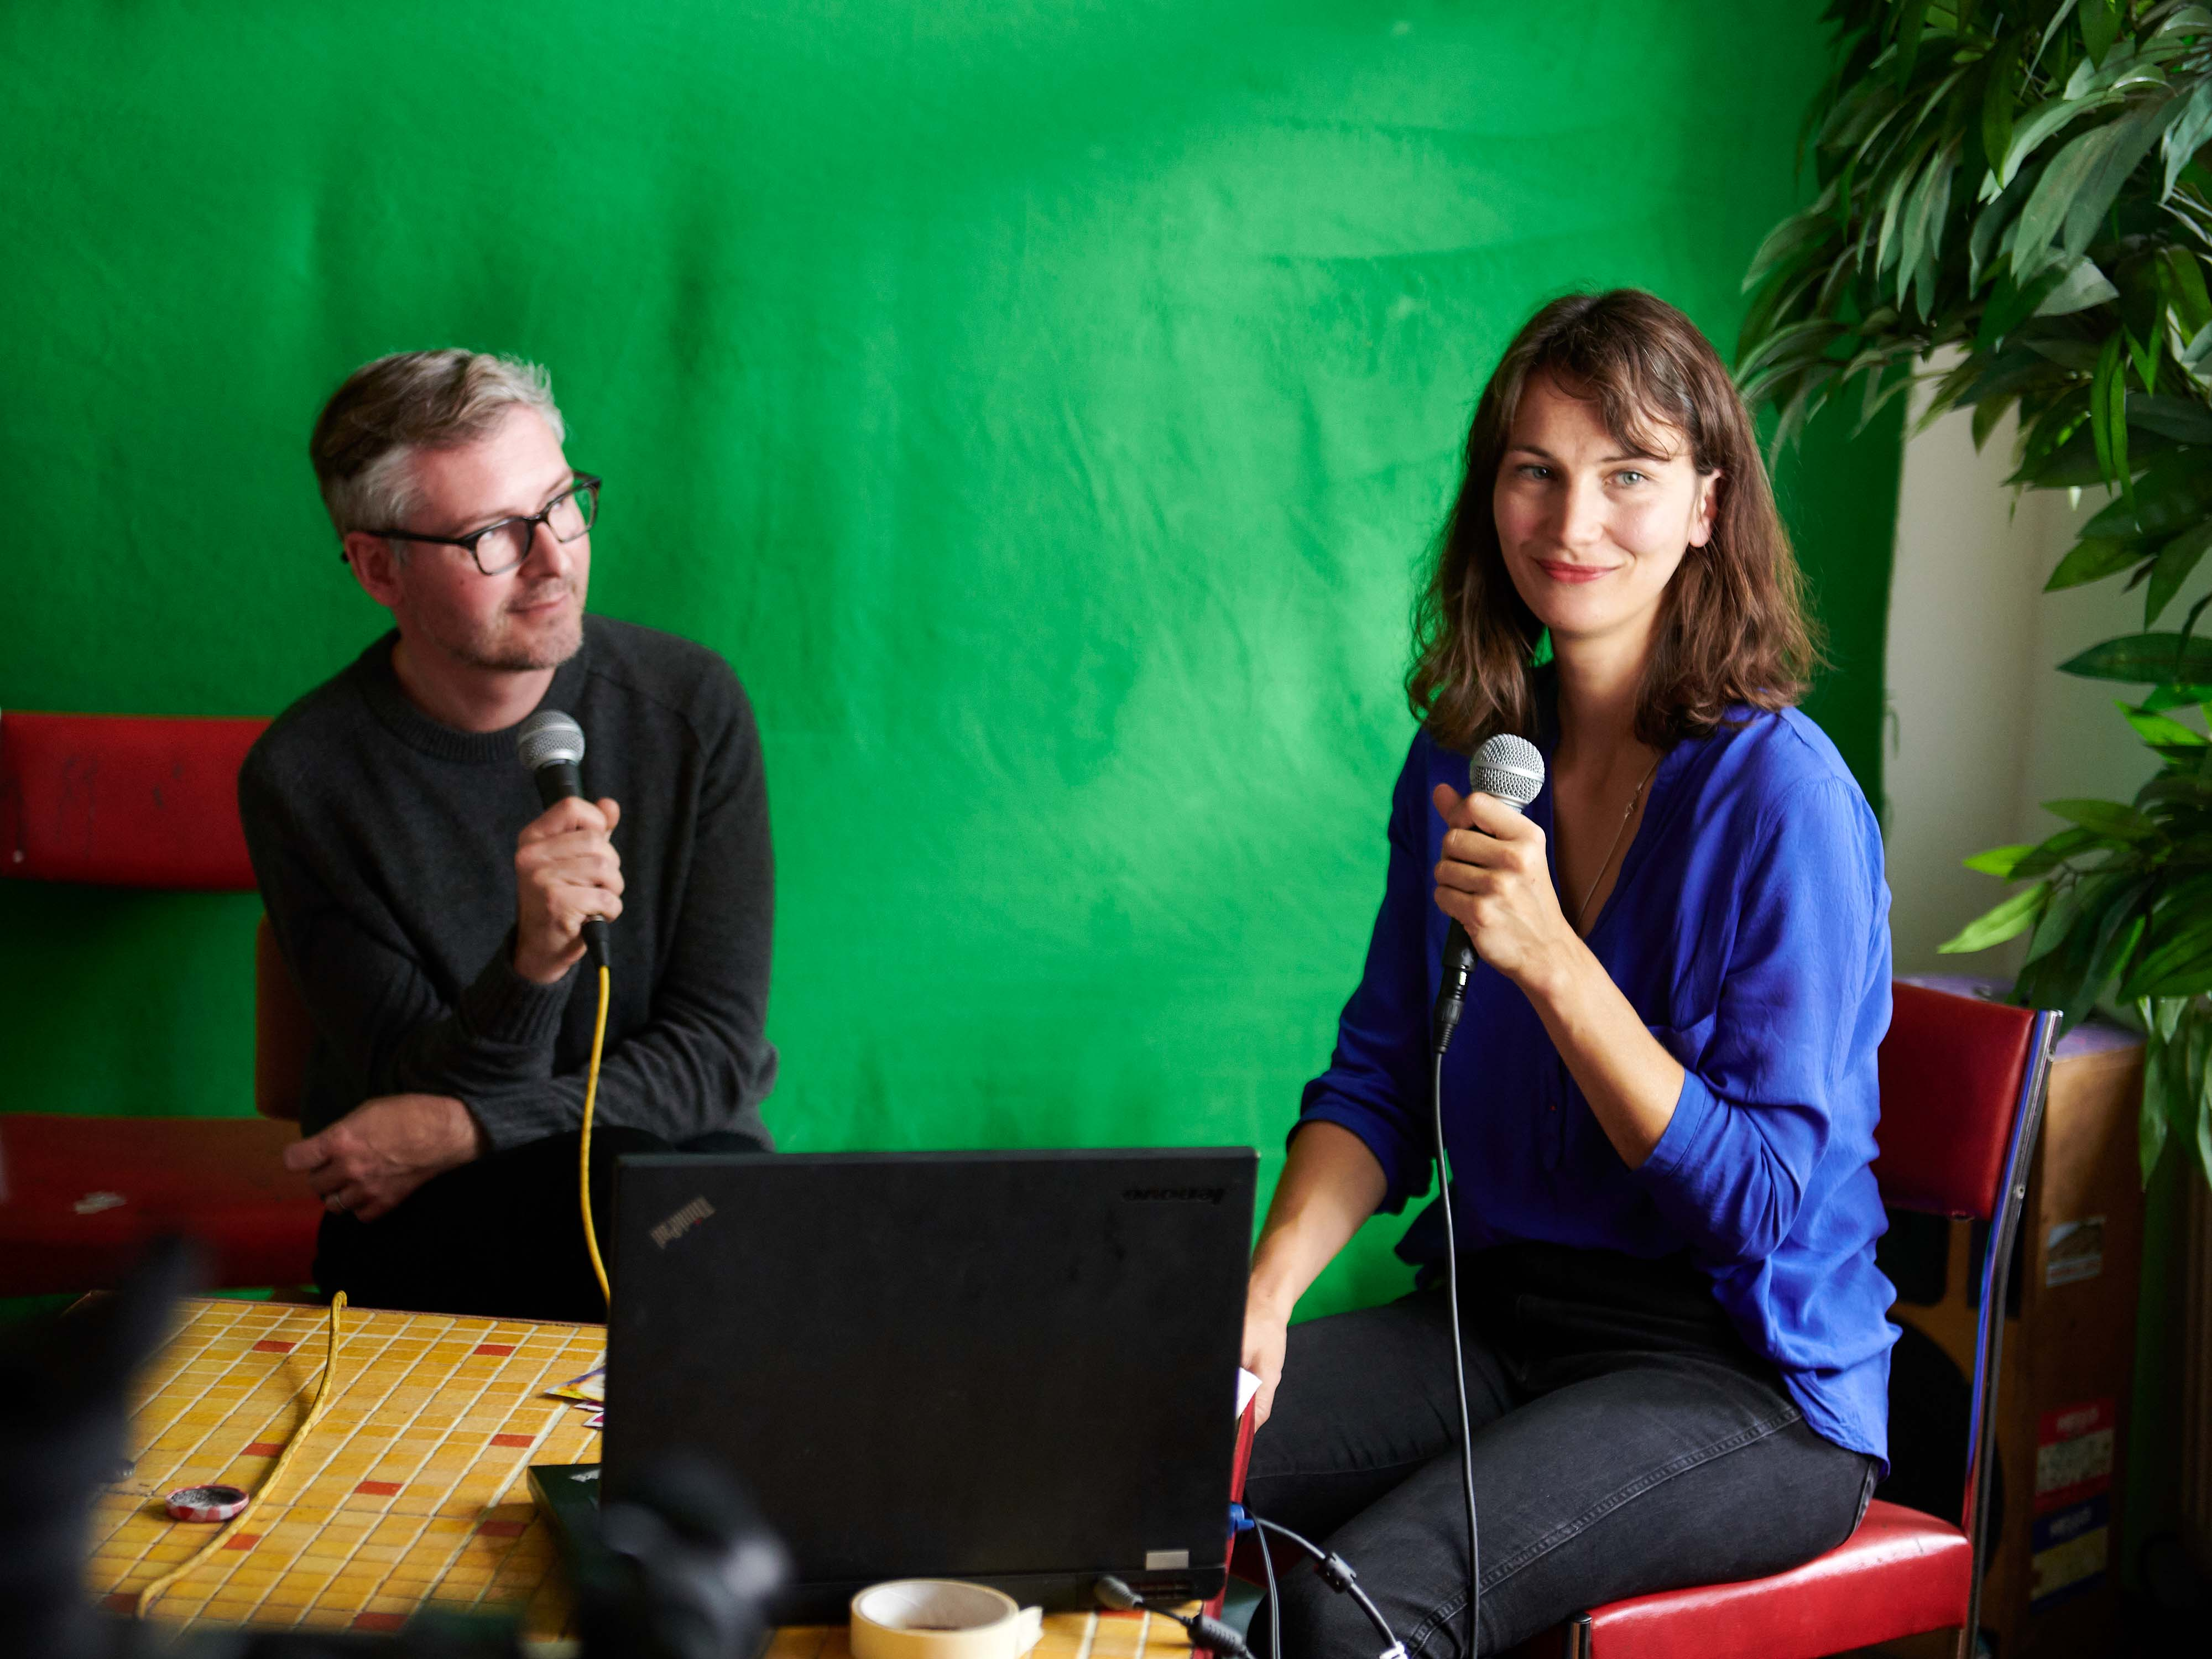 Viktor-Vitkowski-inn-conversation-with-Laura-Bierau-as-part-of-Lindenow-in-Leipzig-October-2020-photo-by-Walther-Le-Kon-2